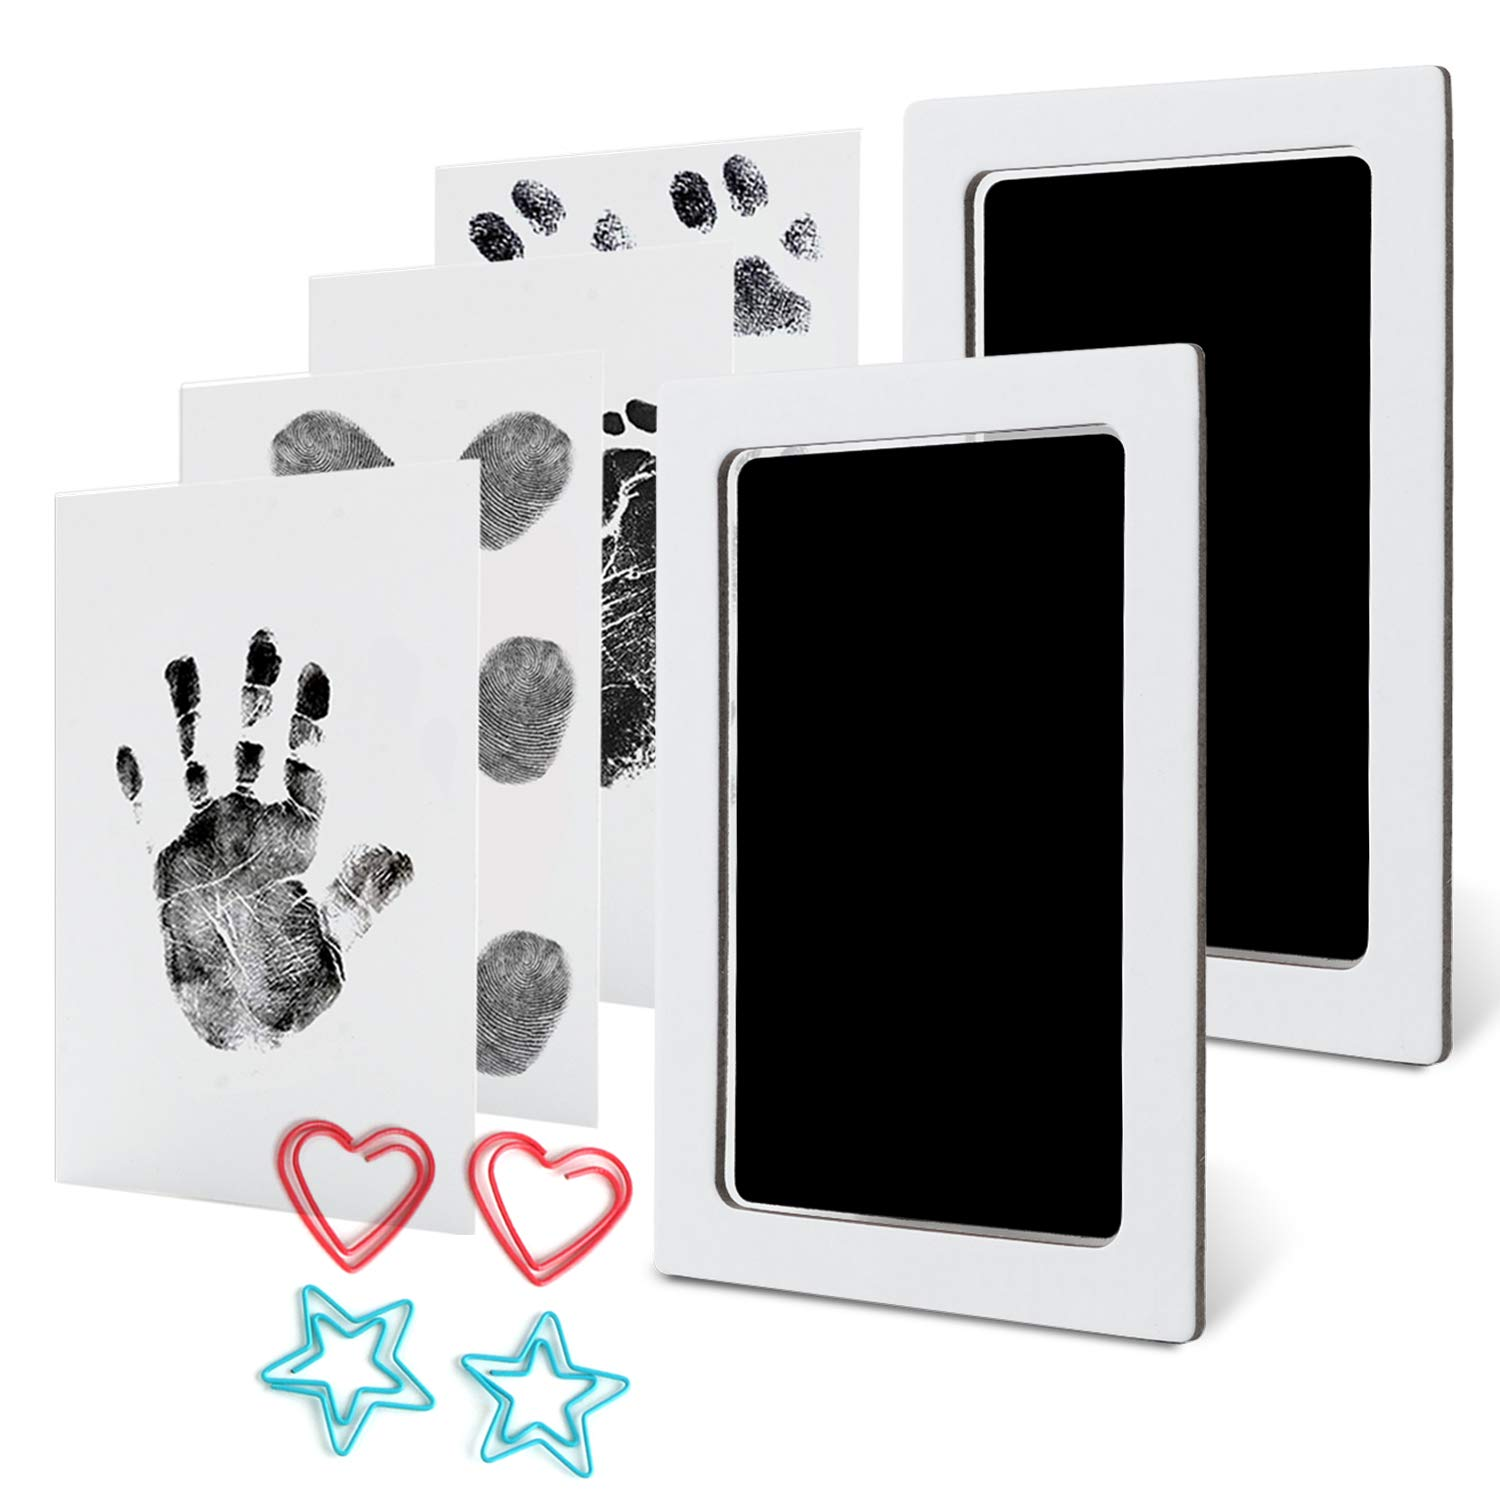 inkless touch stamp pad safe and non-toxic ink pad SHANGXIN Baby handprint footprint stamp pad suitable for baby anniversary souvenirs. baby footprint memorial table